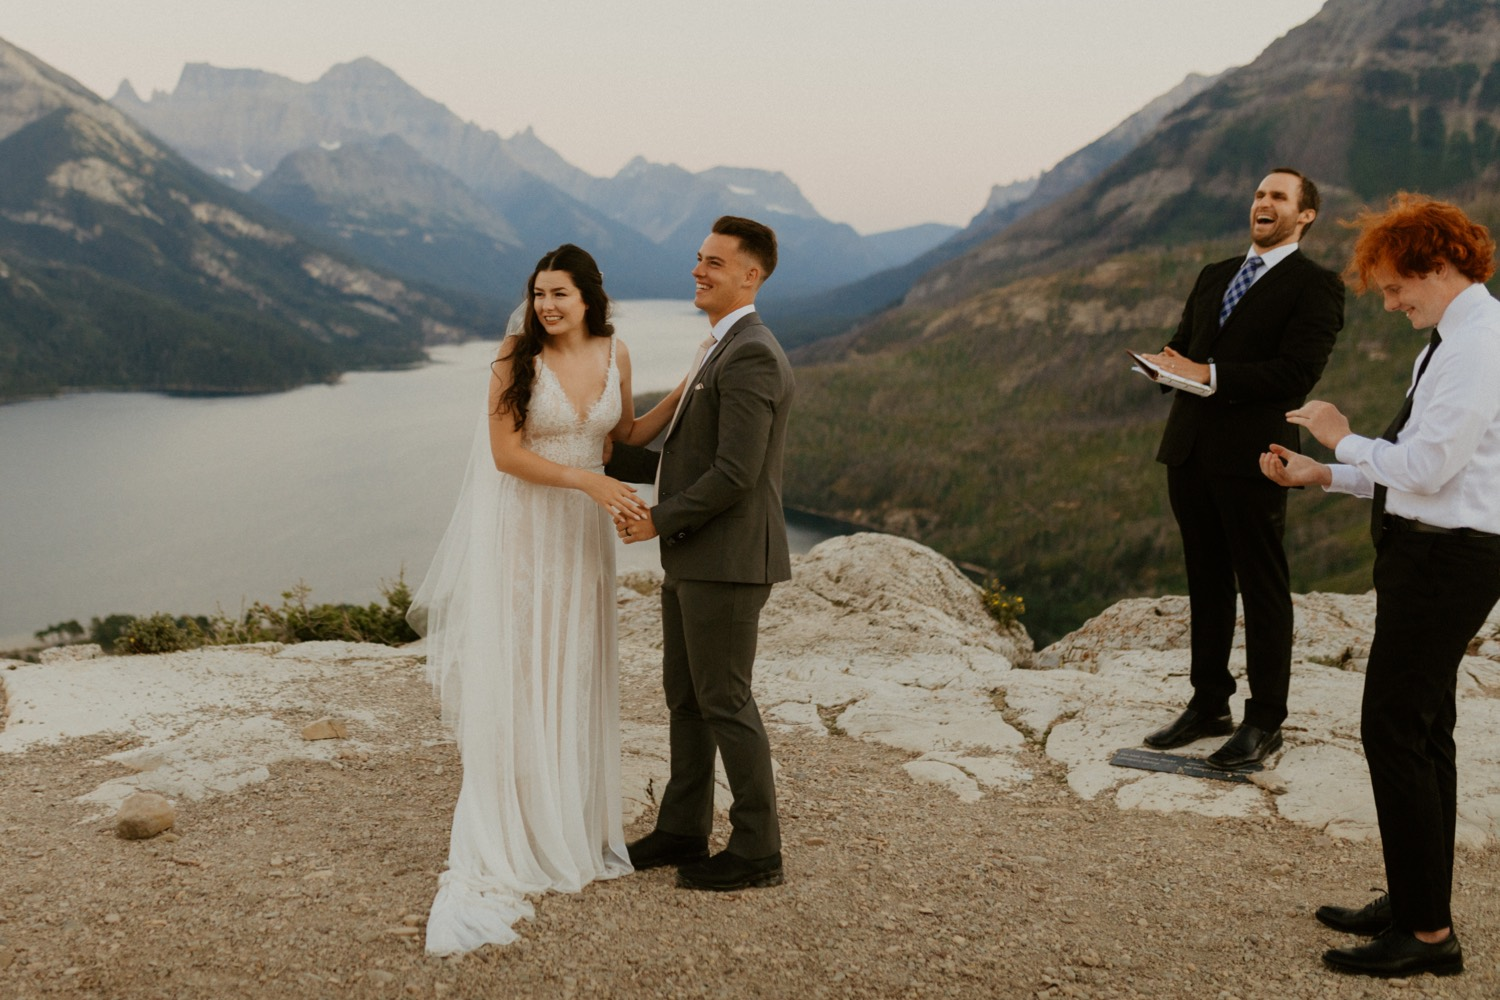 Waterton Wedding Adventurous Mountain Elopement style in the beautiful Canadian Rocky Mountains ceremony at the mountain top with close friends and officiant